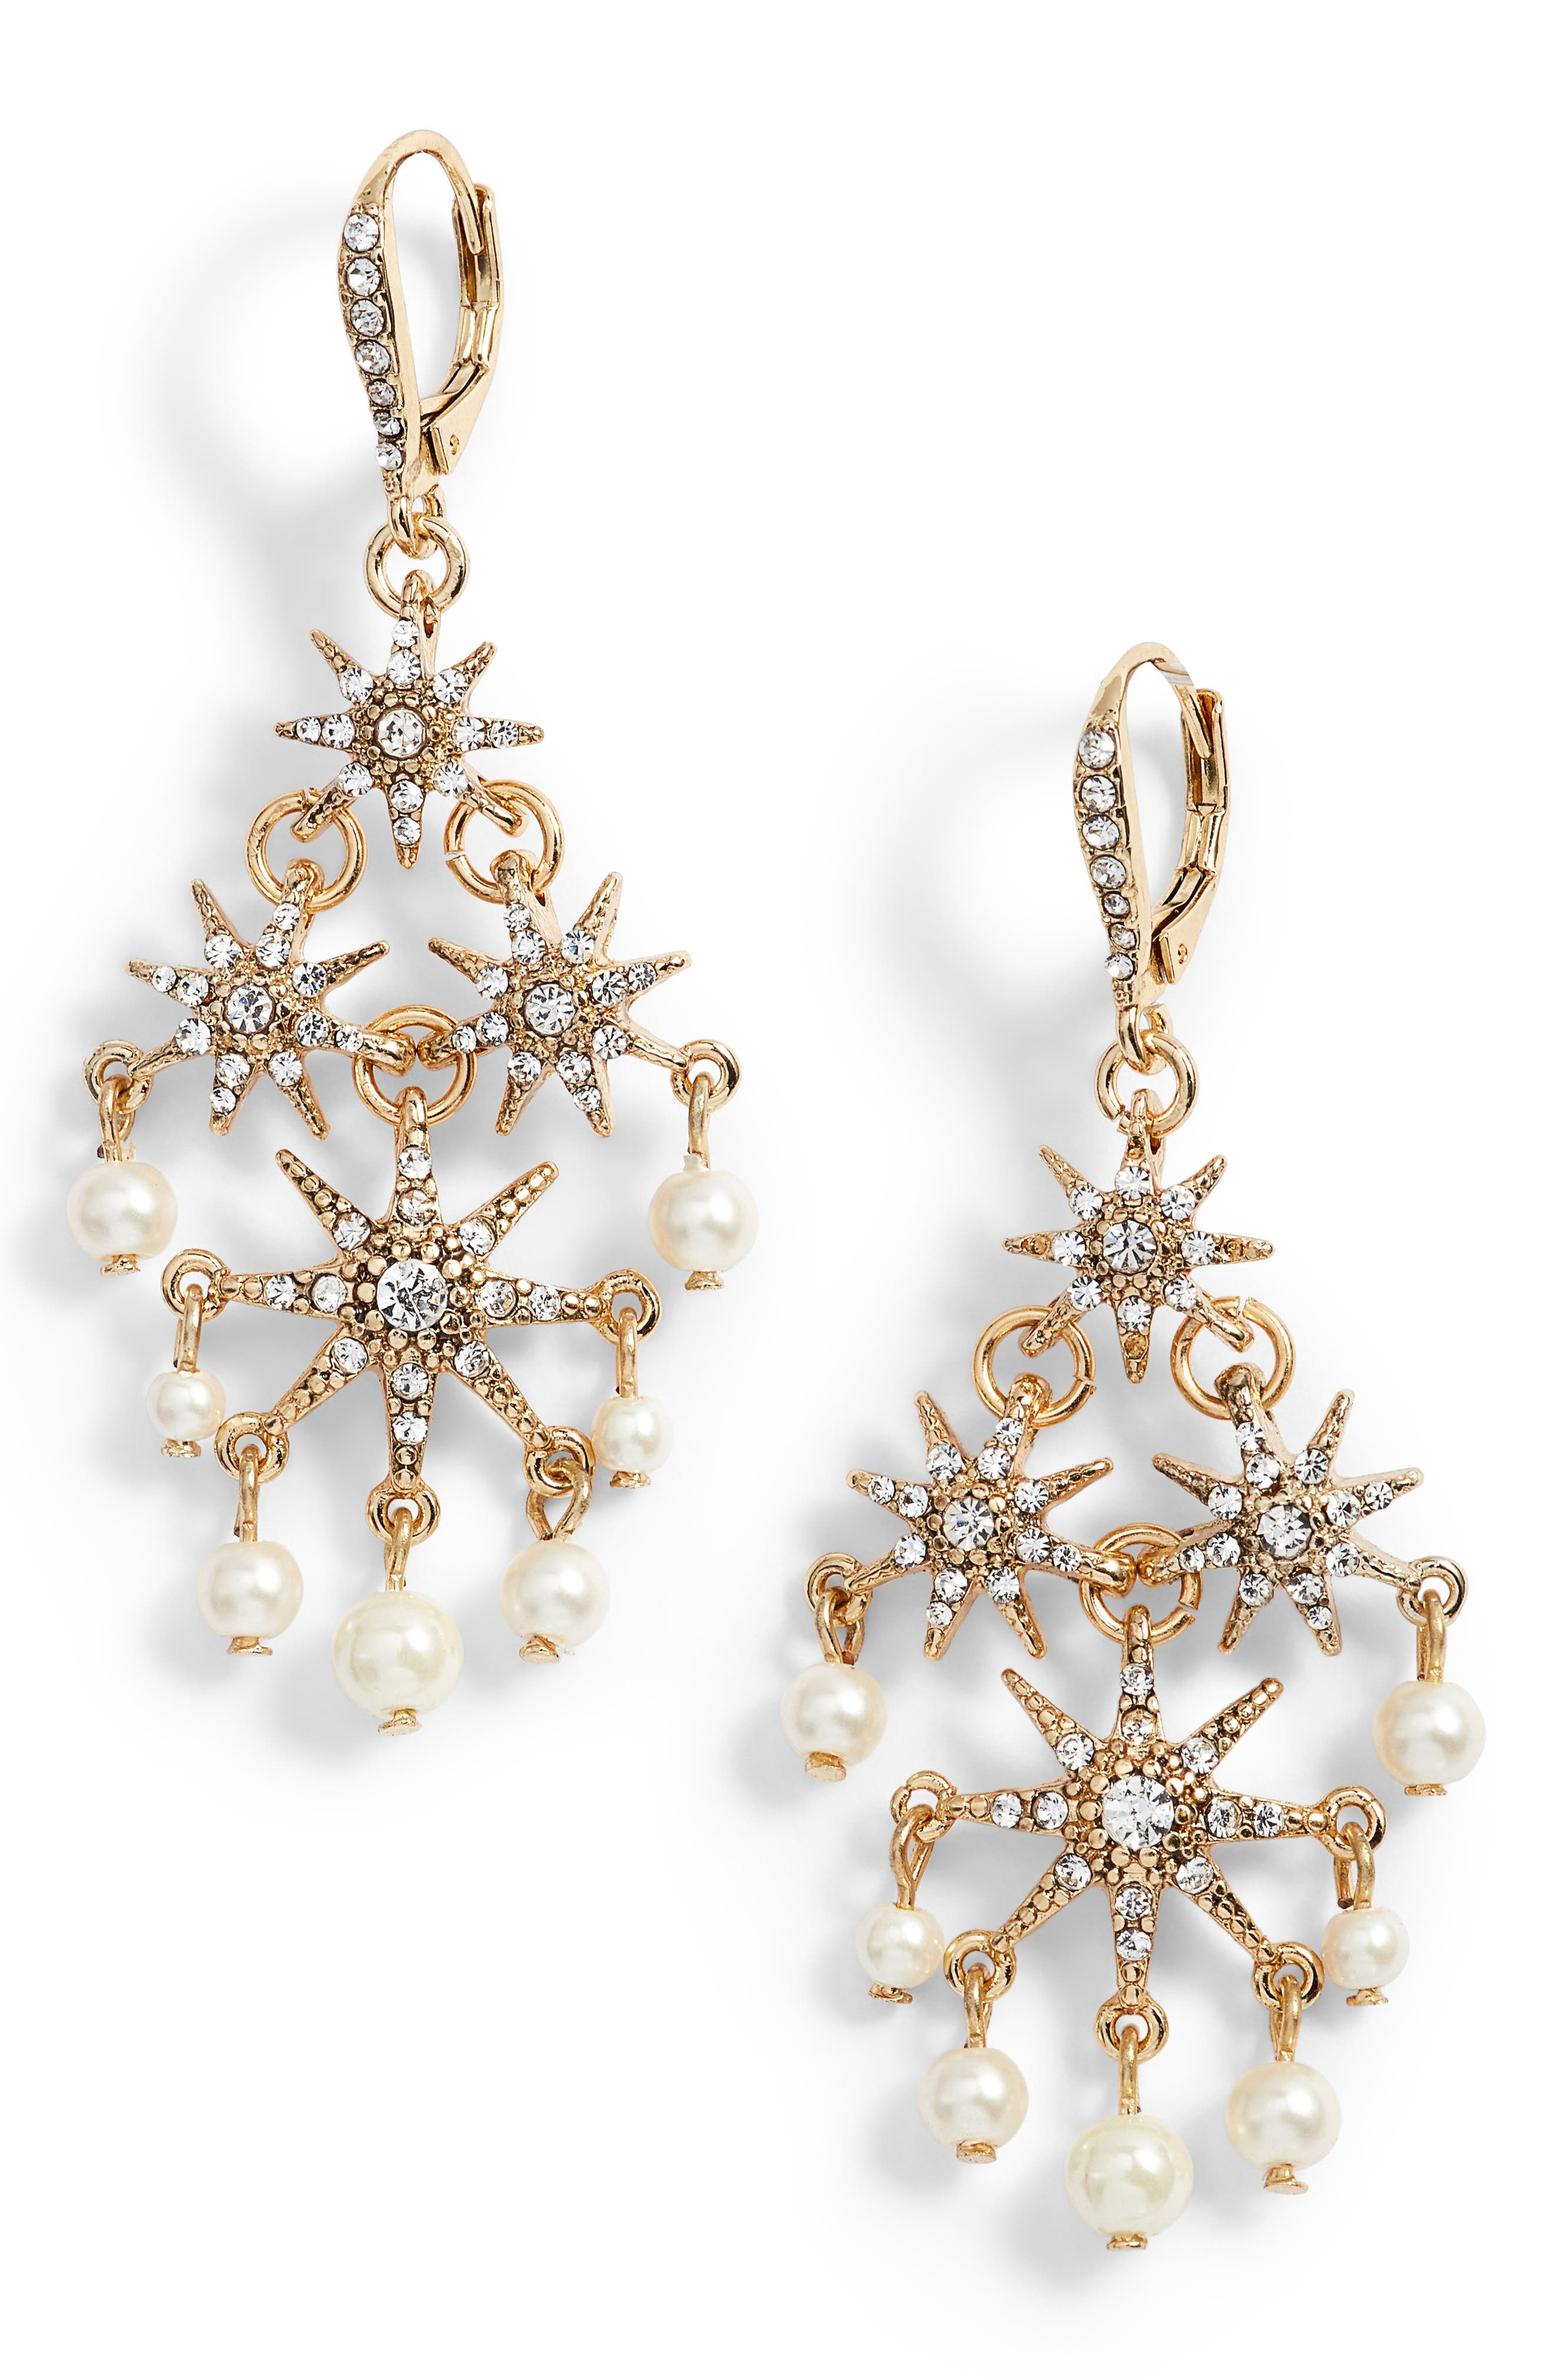 Star Chandelier Drop Earrings,                         Main,                         color, Gold/ Cry/ Pearl